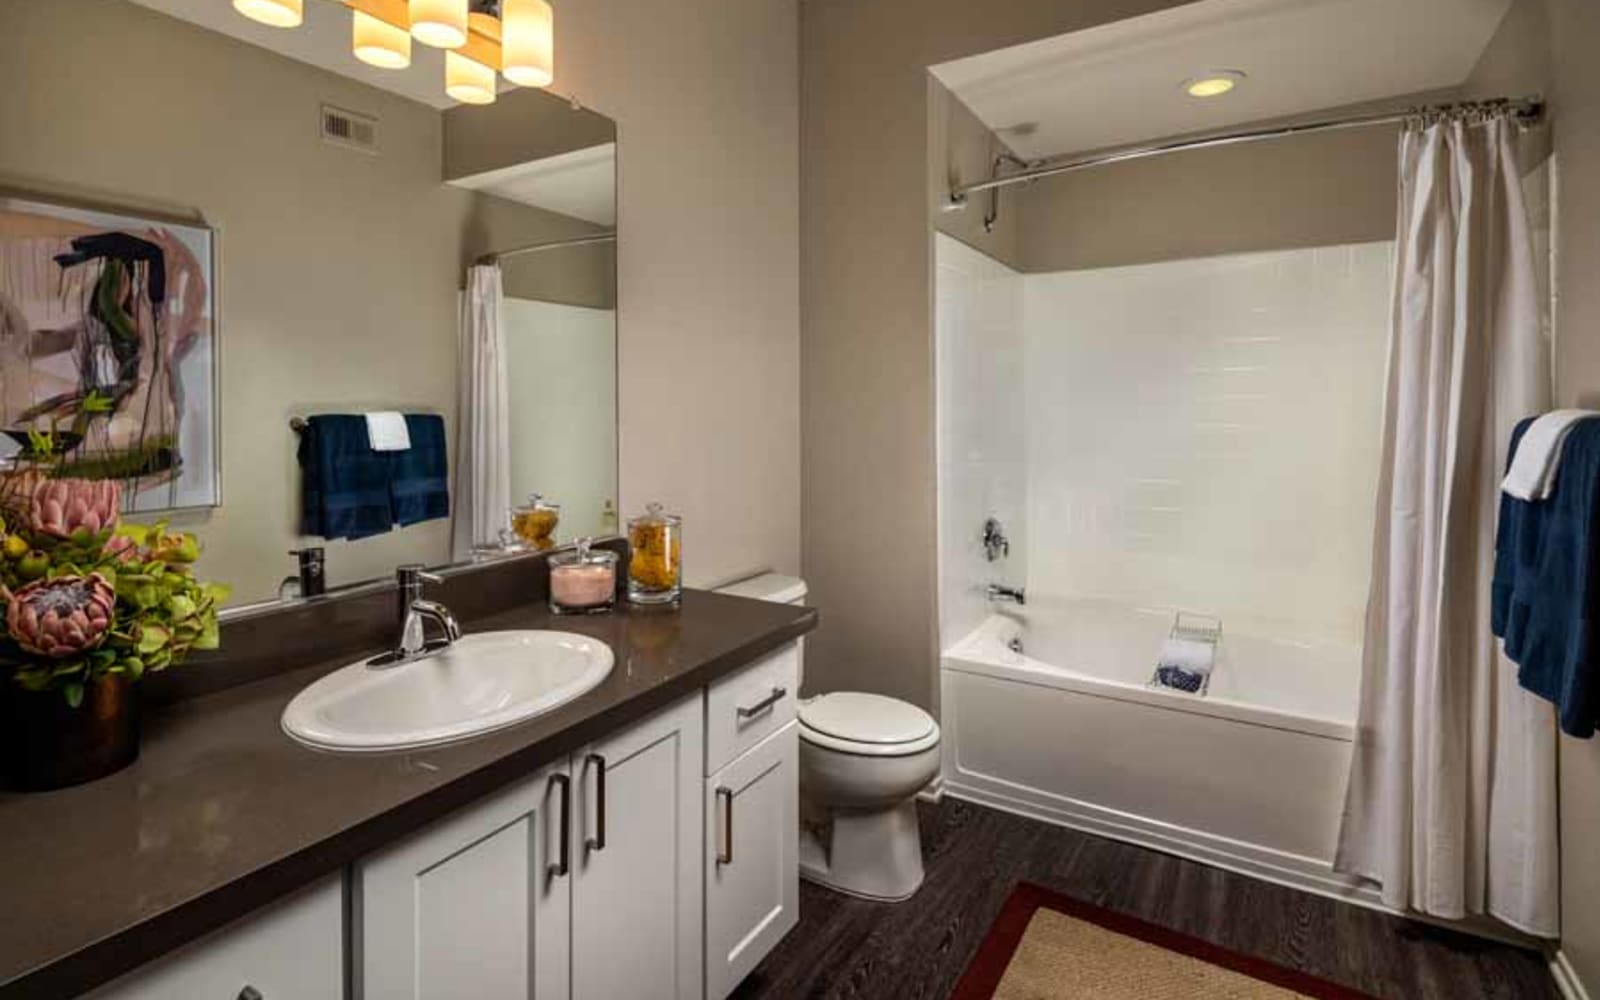 A decorated apartment bathroom at Castlerock at Sycamore Highlands in Riverside, California